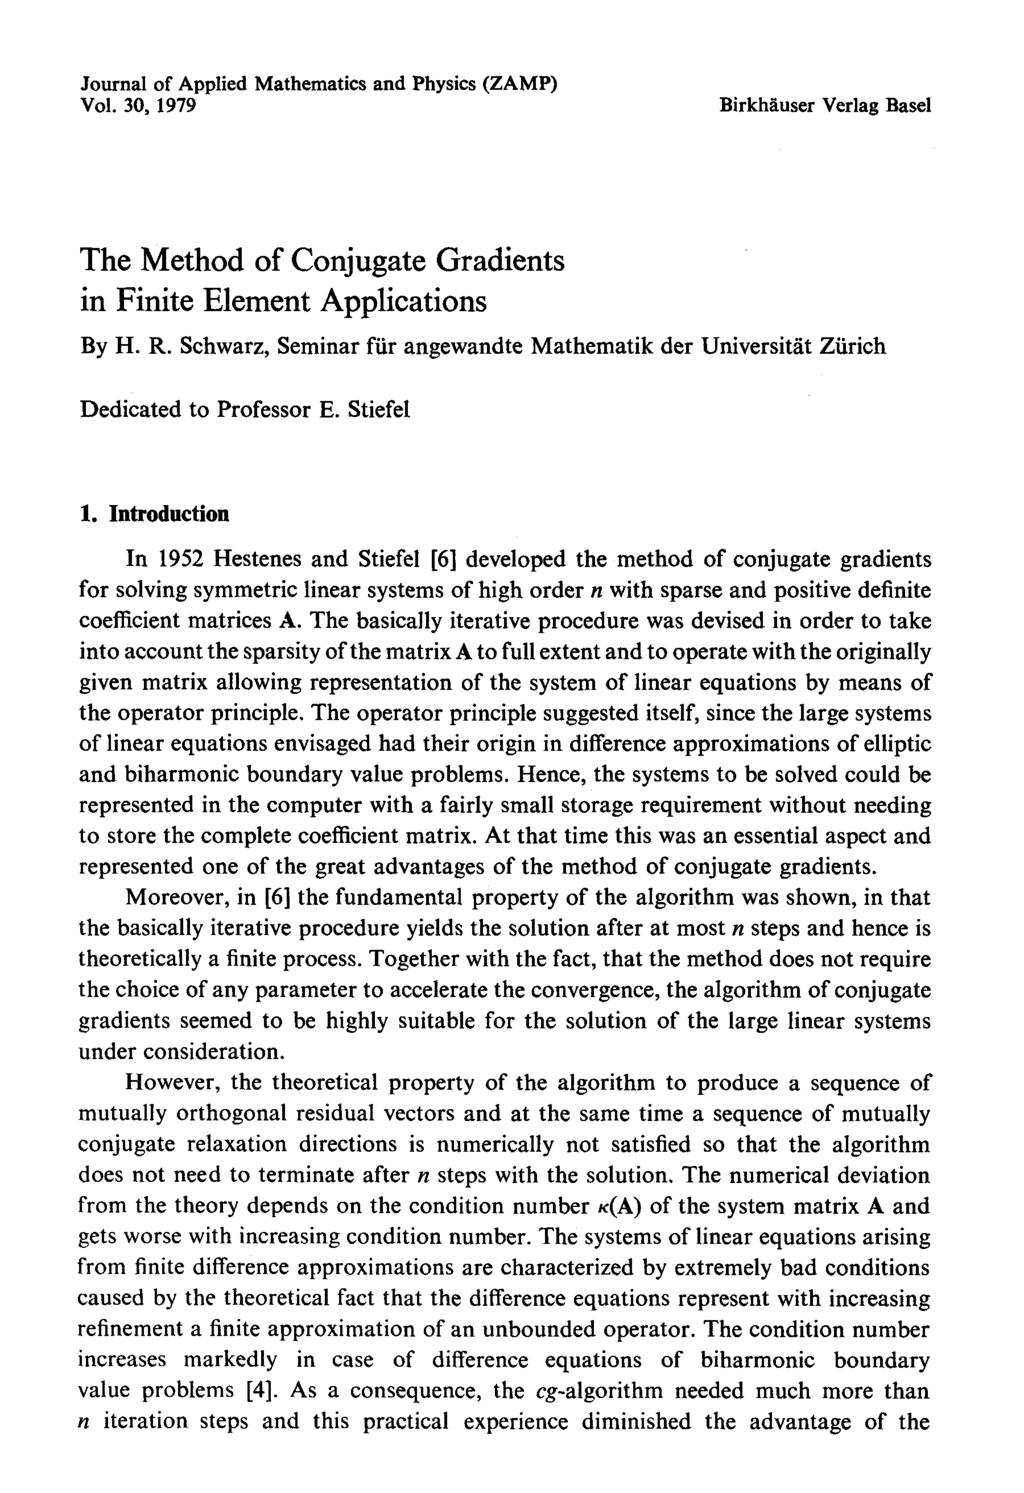 Journal of Applied Mathematics and Physics (ZAMP) Vol. 30, 1979 Birkhiuser Yerlag Basel The Method of Conjugate Gradients in Finite Element Applications By H. R.